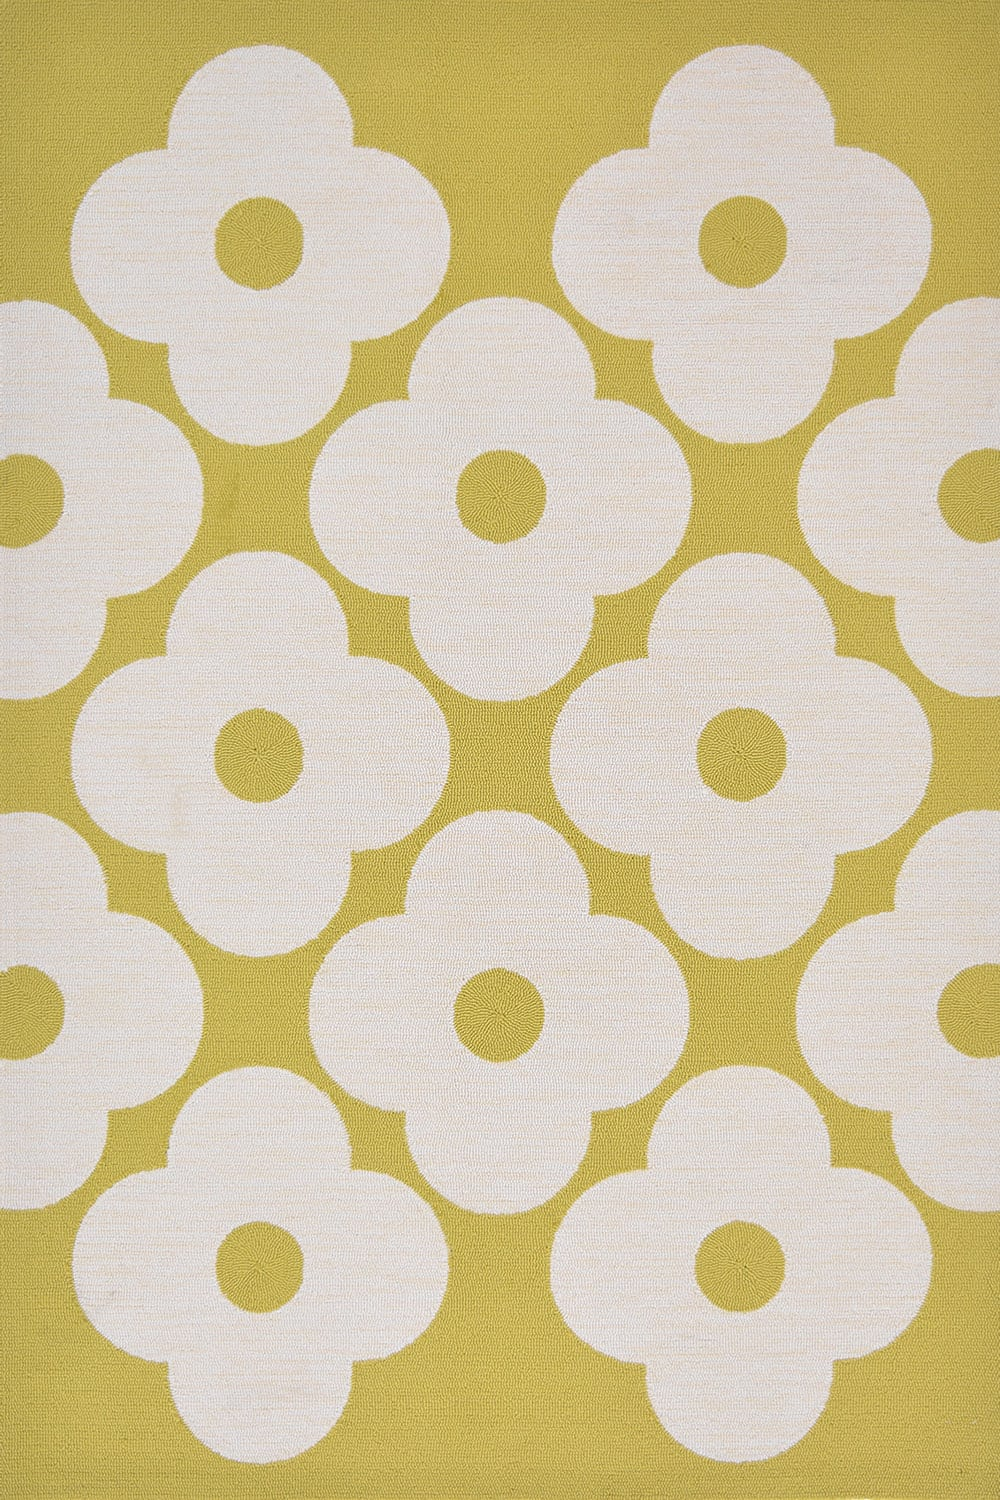 Χαλί Spot Flower 460806 Yellow-White Orla Kiely 250X300